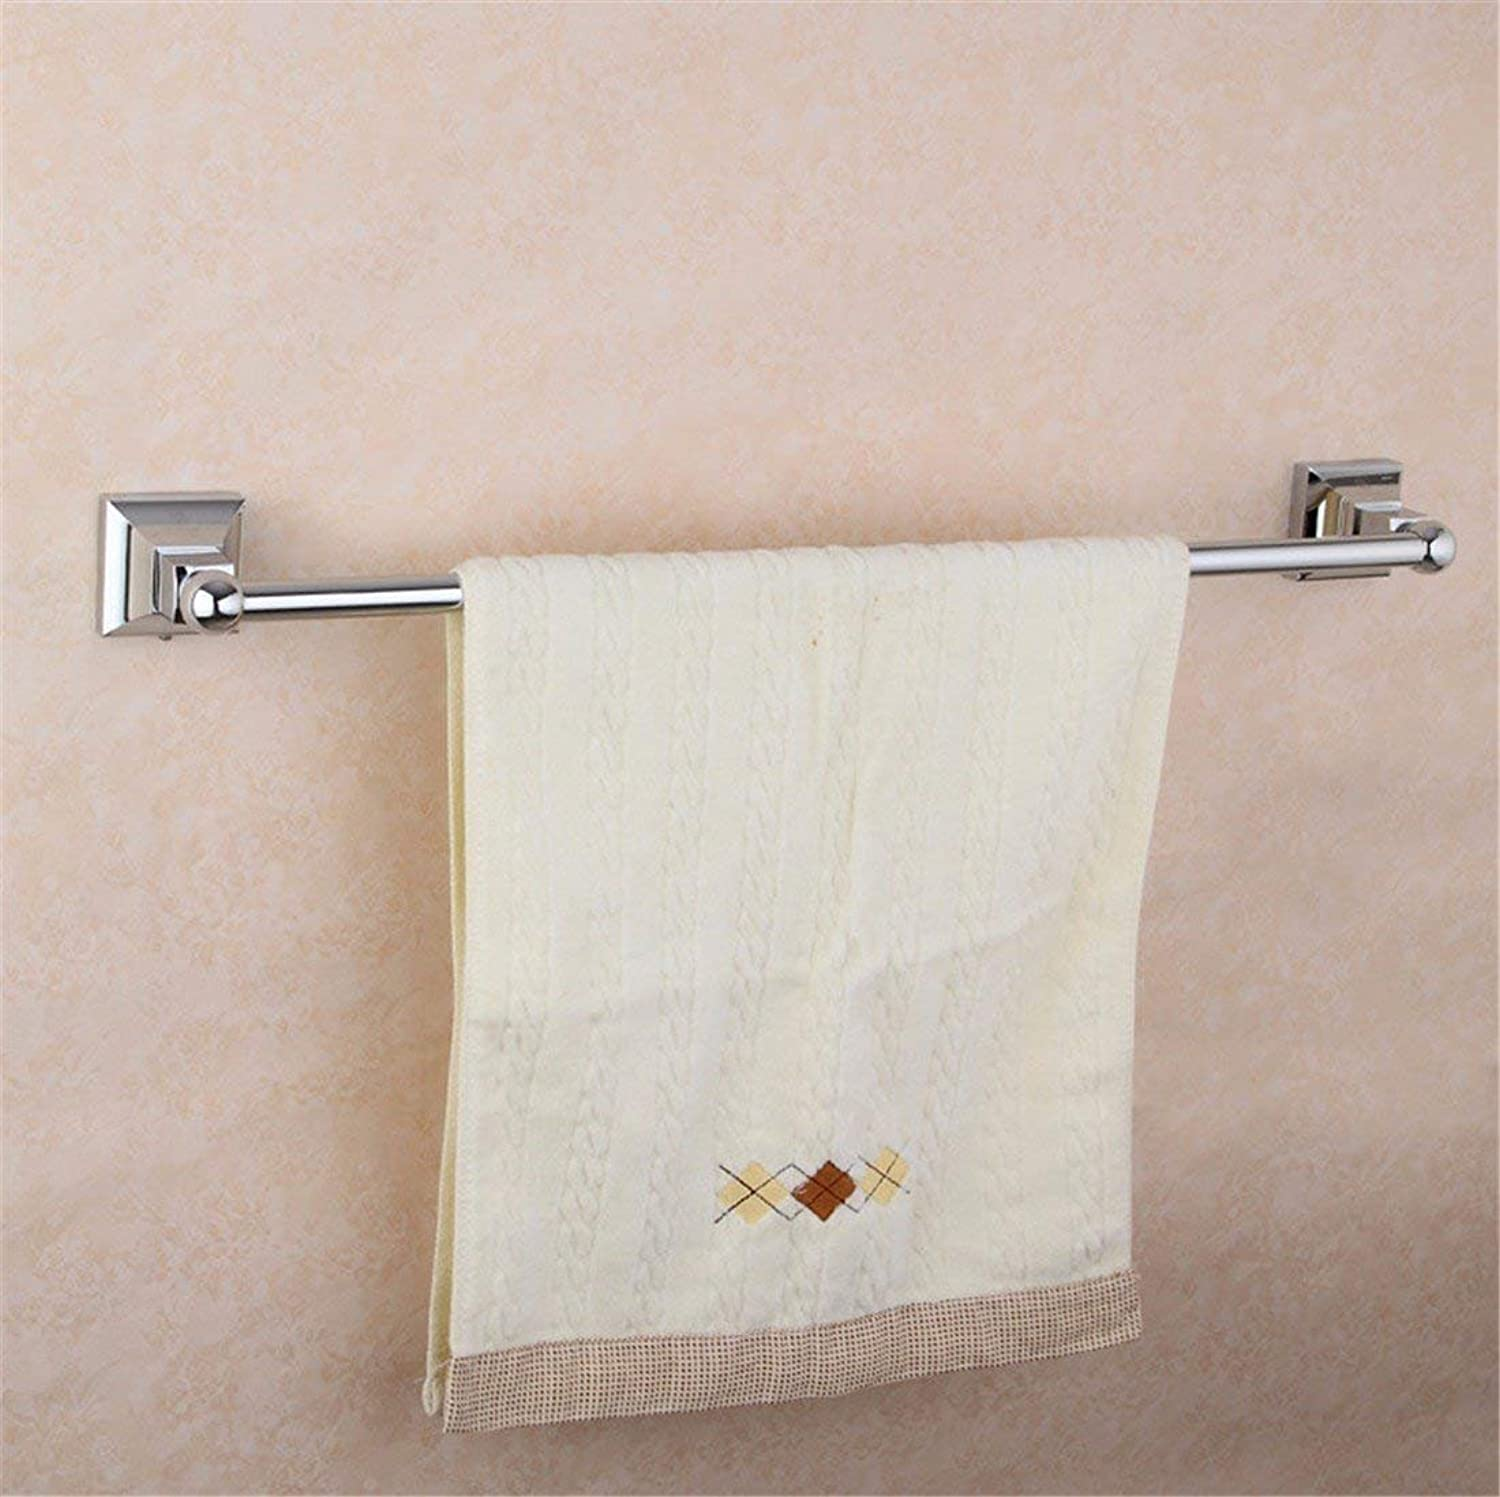 Full of European Style Square Base Chromium Copper Accessories for Bathroom, Dry-Towels Cup-Holder, Toothbrush, Ring,Single Rod